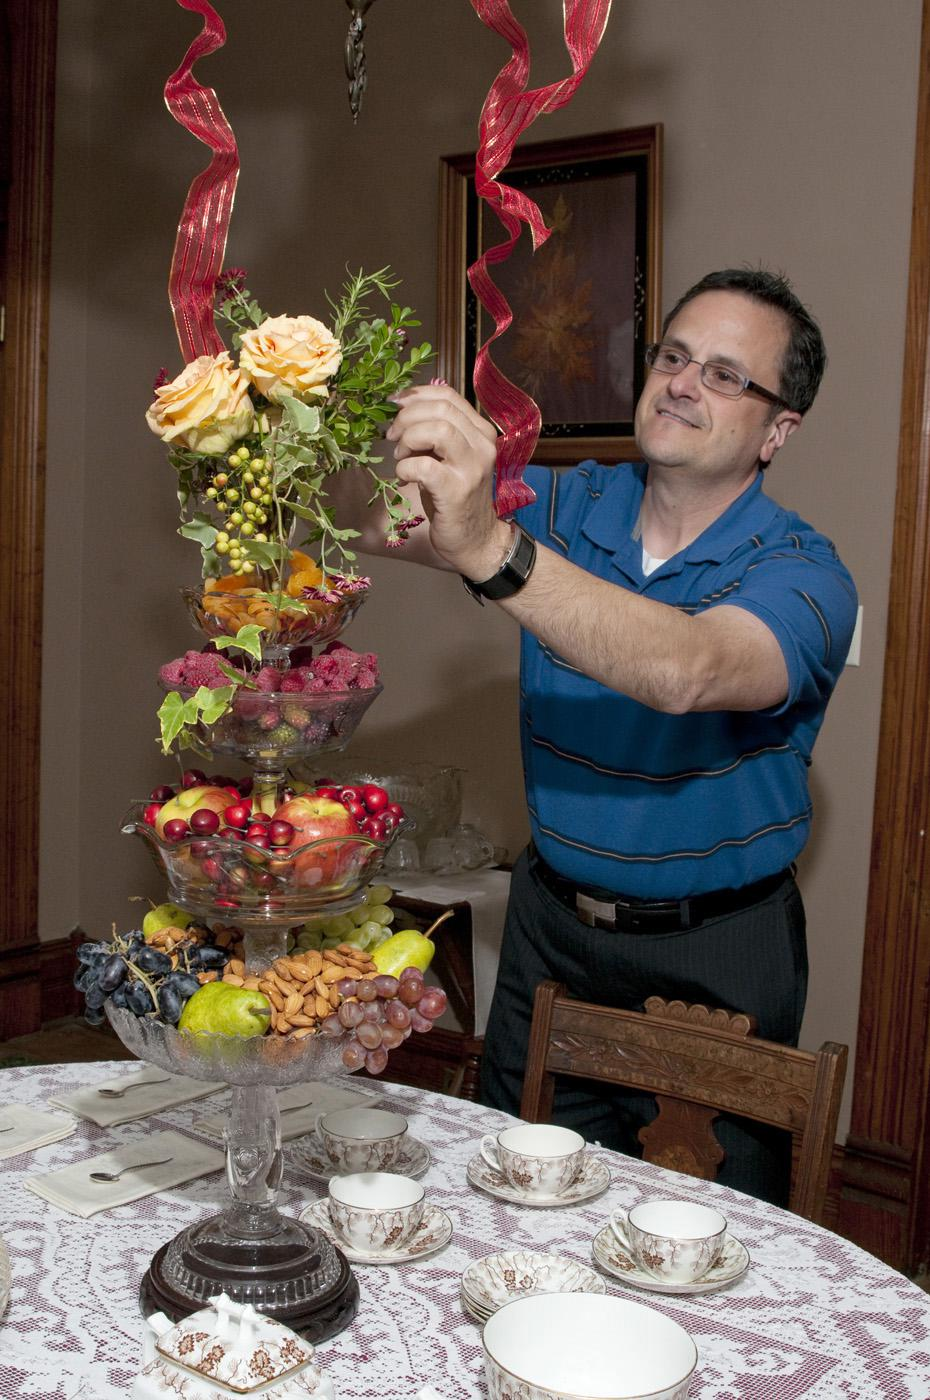 Jim DelPrince fills stacked glass comports with fruit, nuts and cut plant materials to create a stunning but inexpensive holiday centerpiece. (Photo by Scott Corey)